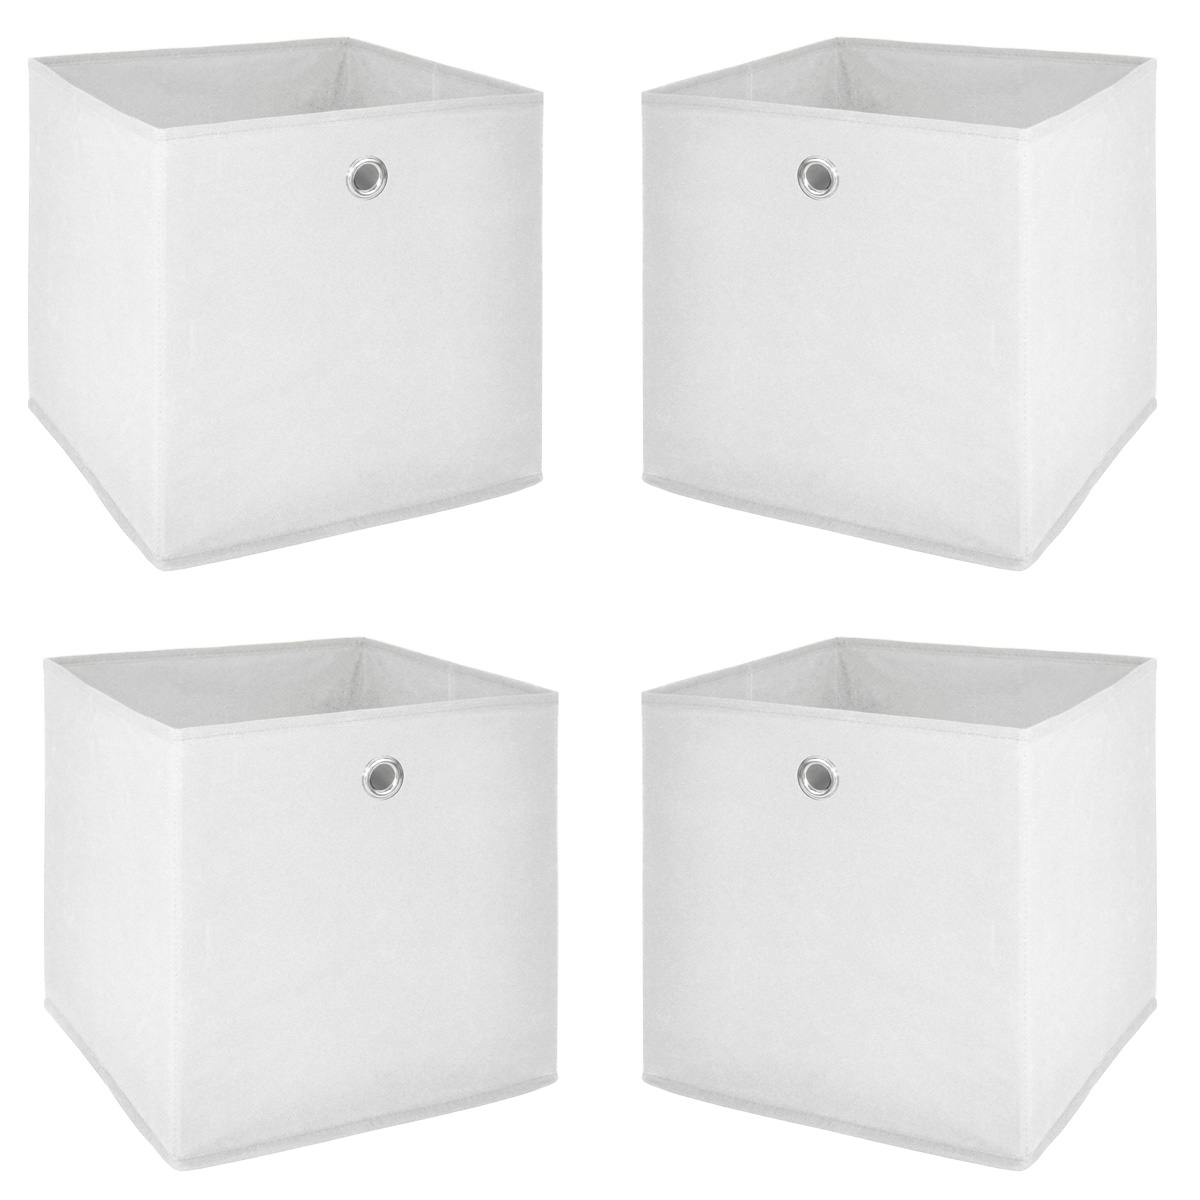 Korb Regal Faltbox 4er Set Flori 1 Korb Regal Aufbewahrungsbox In